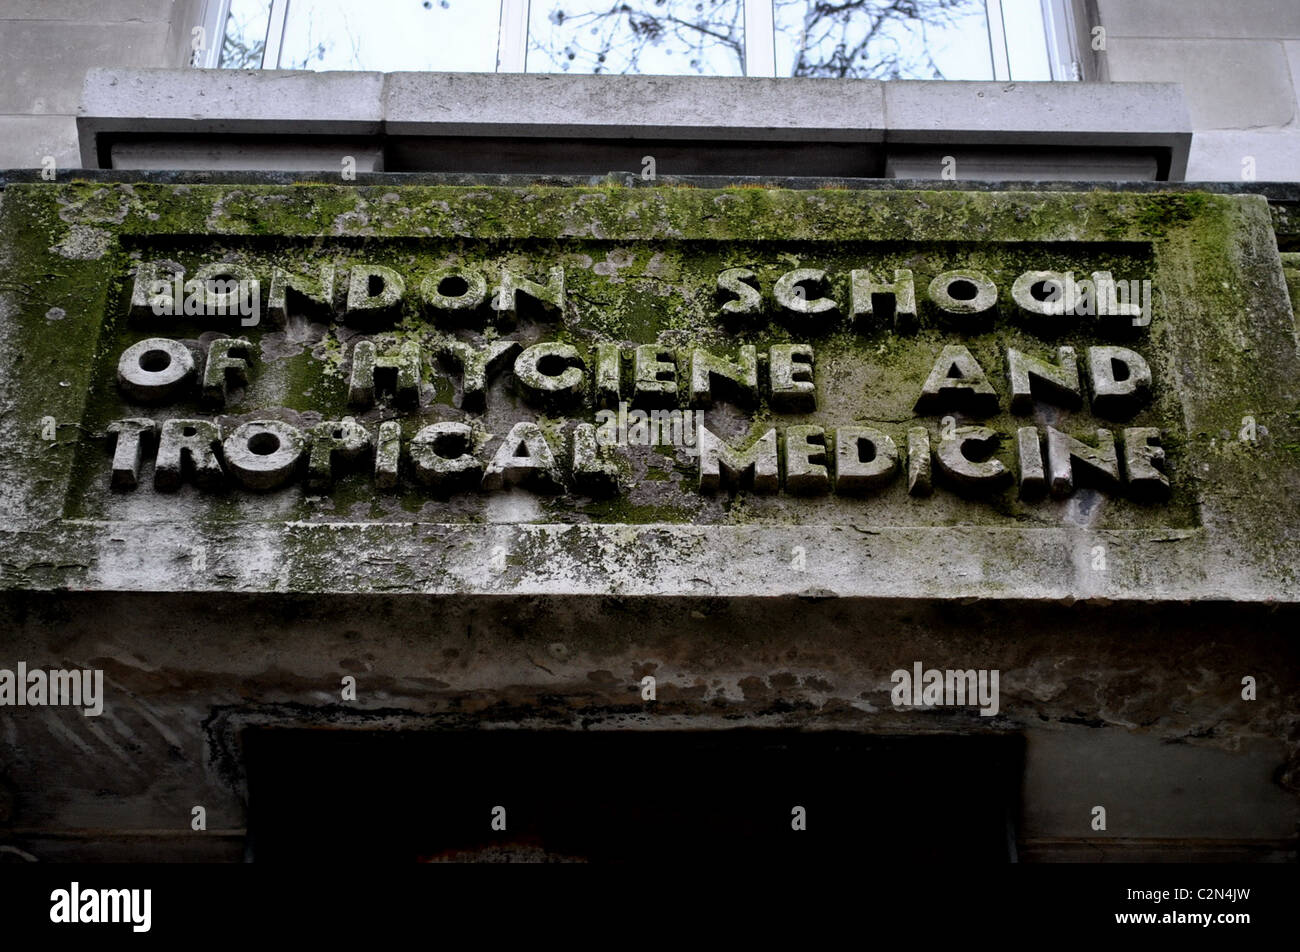 Moss covered Sign craved in stone for the London school of hygiene and tropical medicine. Stock Photo